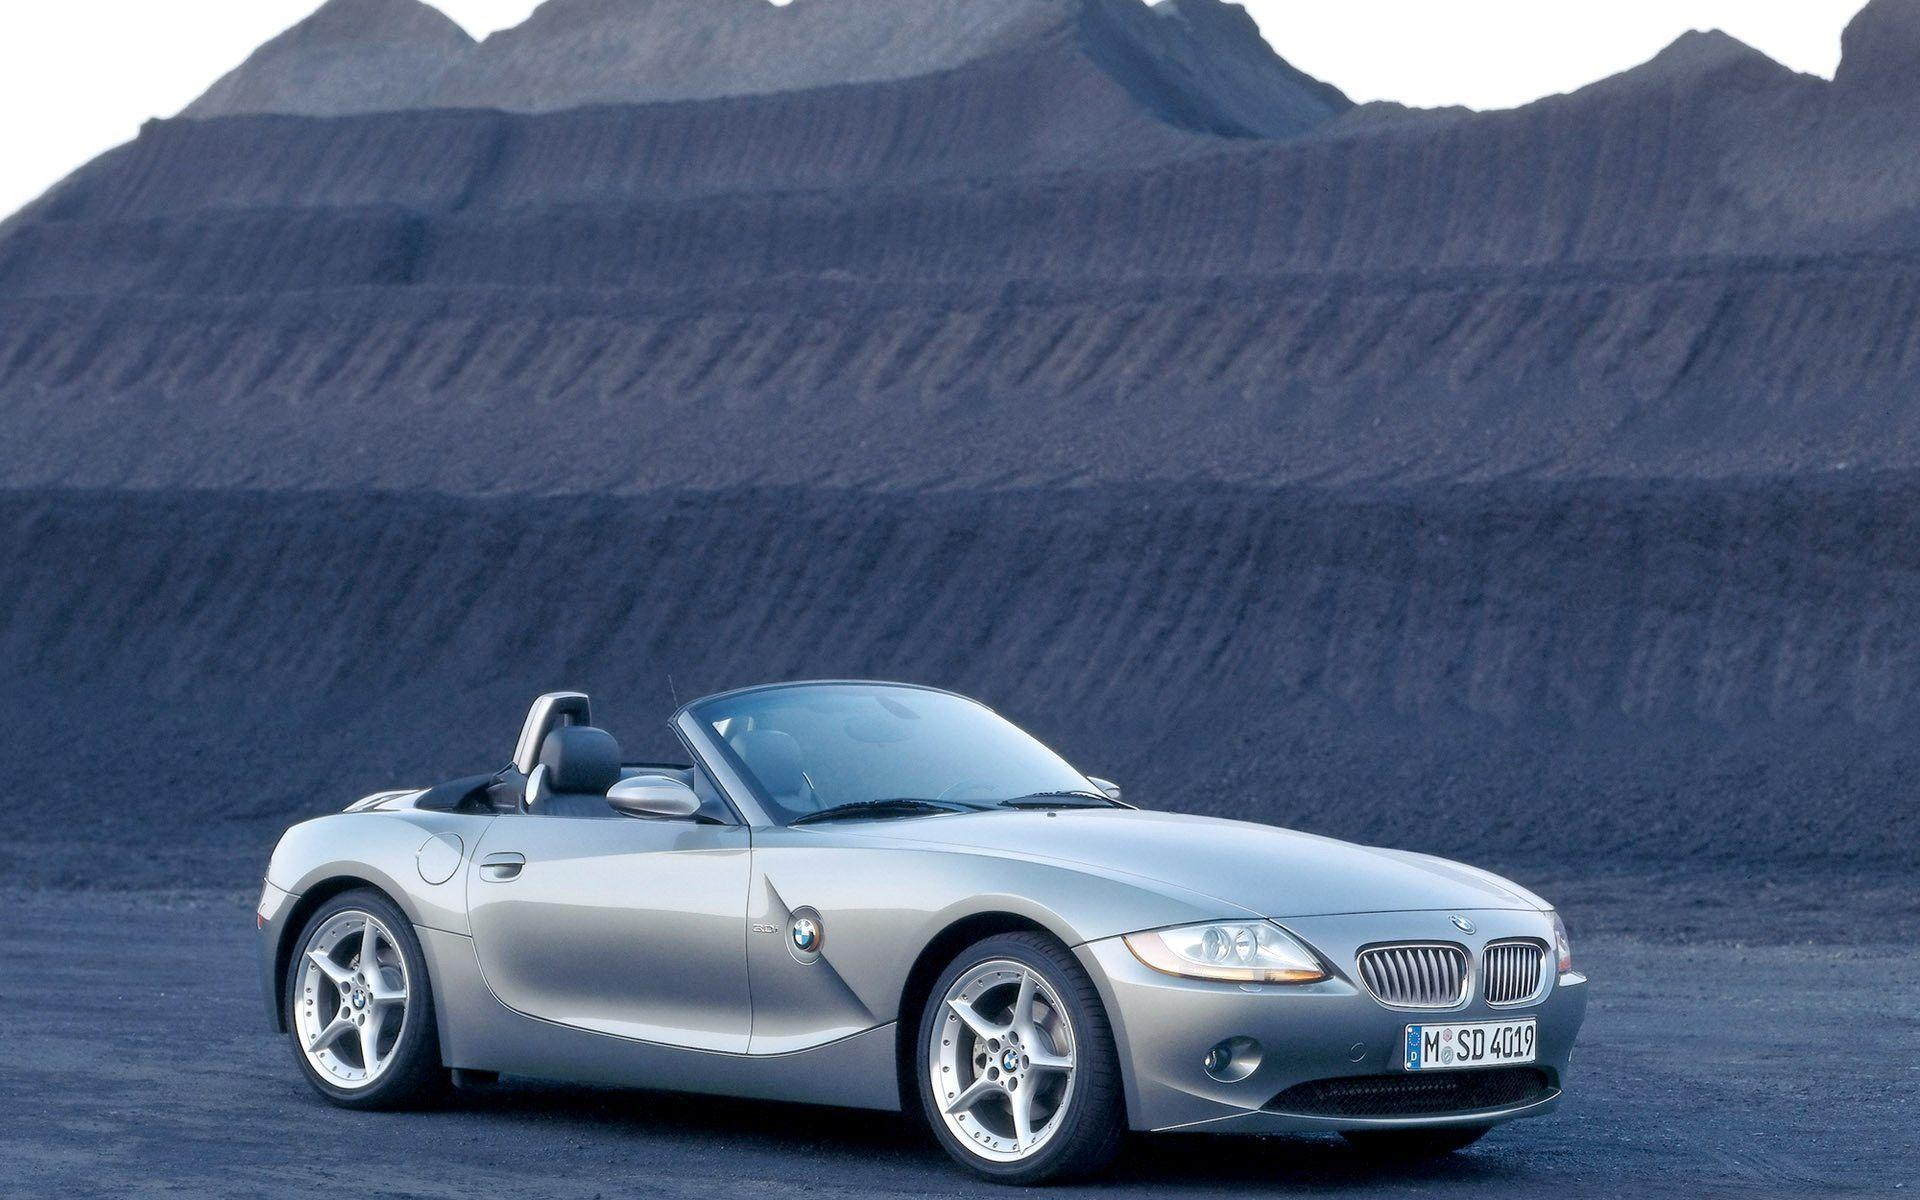 BMW Z4 Roadster Wallpaper 02 - 1920x1200